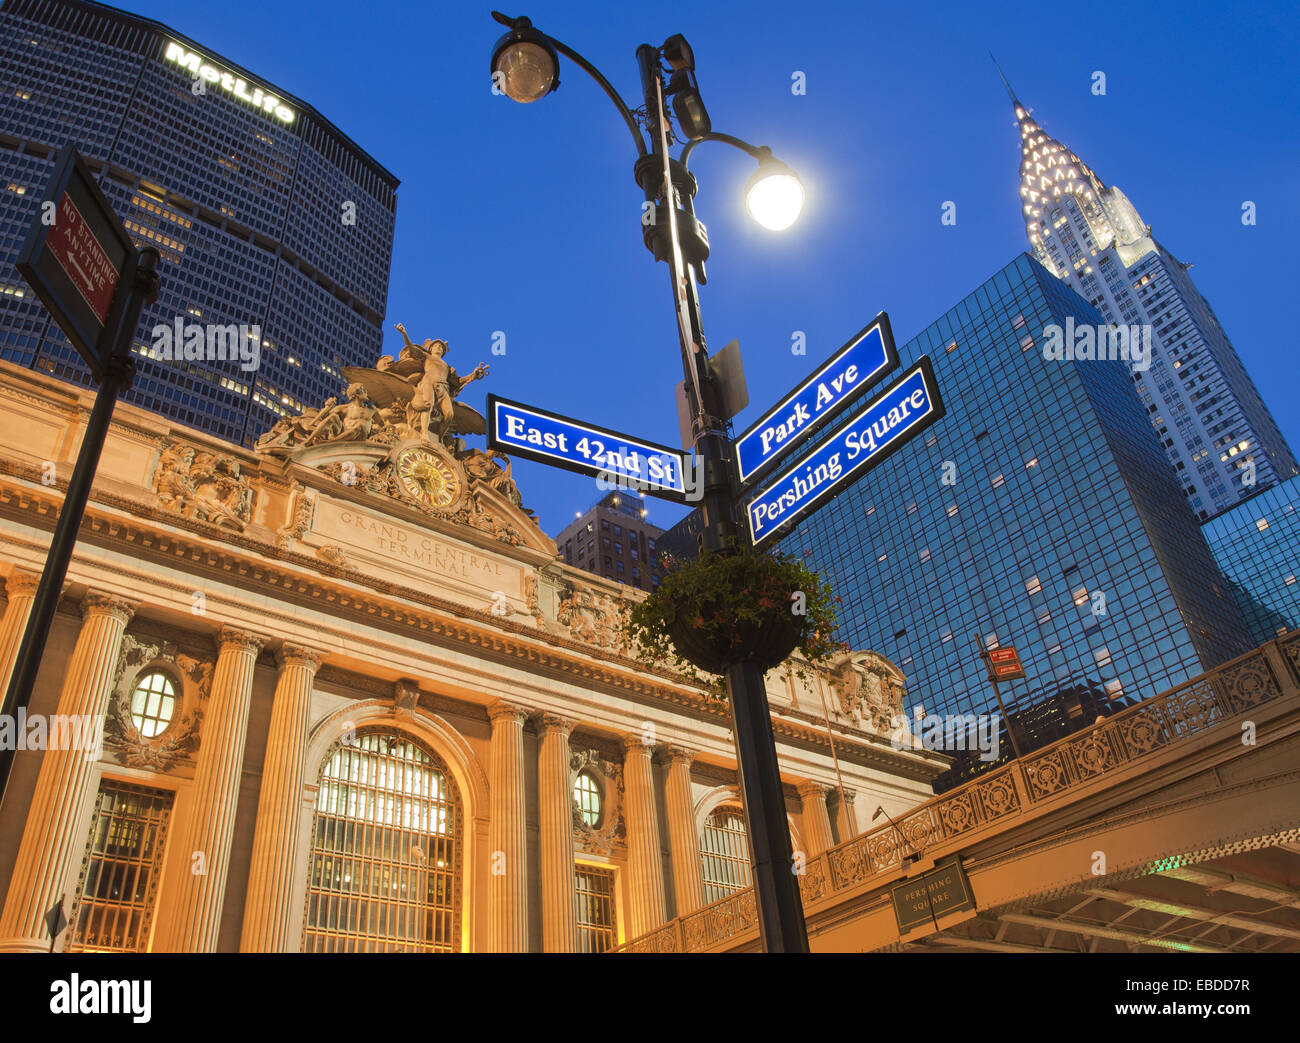 East 42nd Street and Park Avenue street sign, Grand Central Station or Grand Central Terminal, Pershing Bridge, - Stock Image